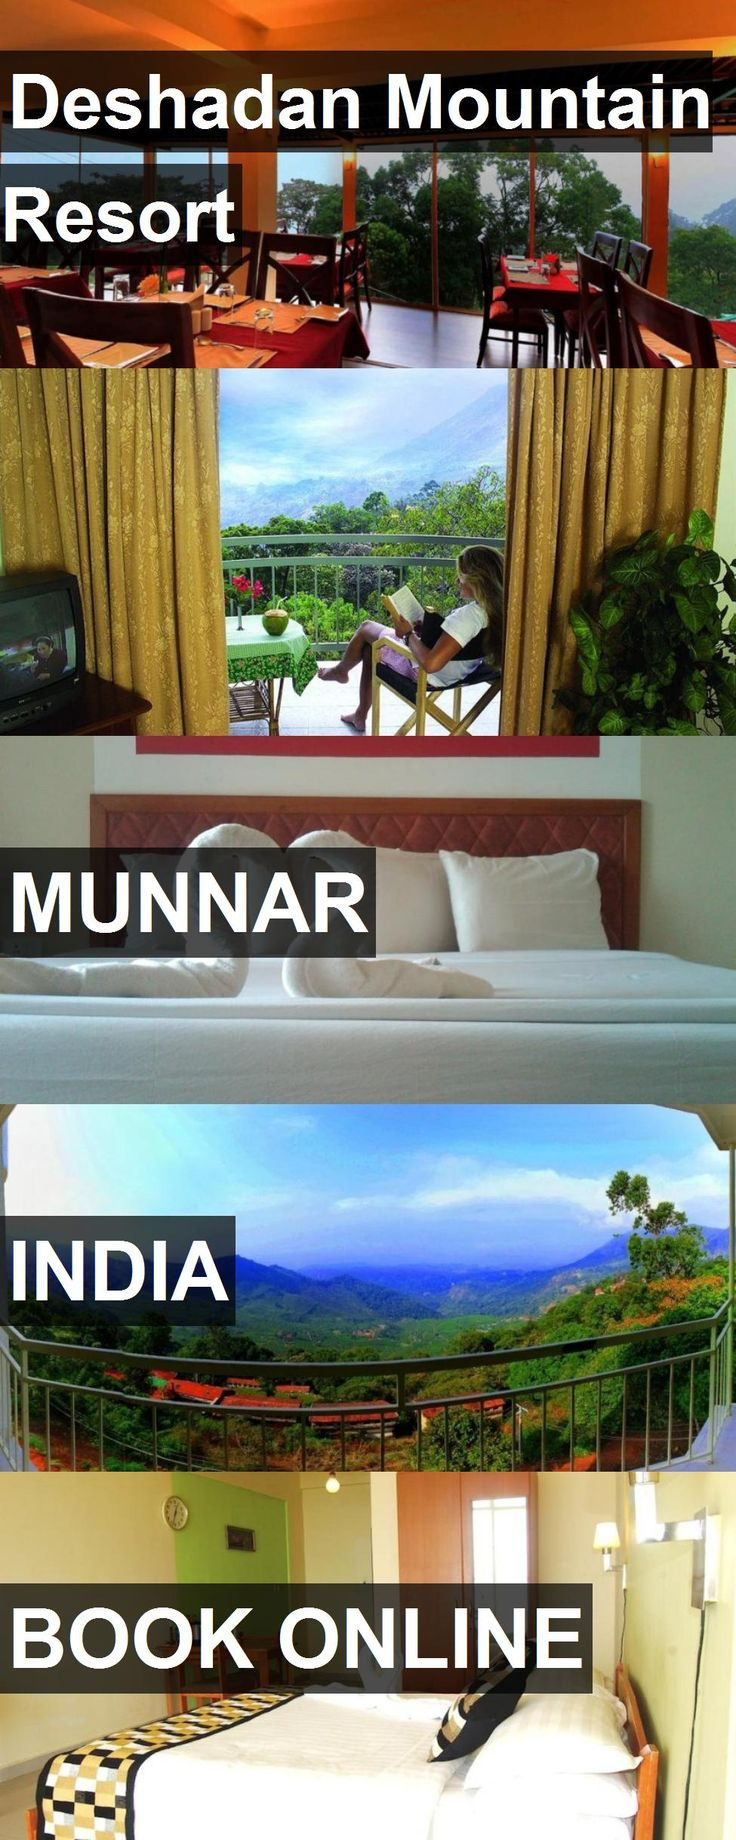 Hotel Deshadan Mountain Resort in Munnar, India. For more information, photos, reviews and best prices please follow the link. #India #Munnar #DeshadanMountainResort #hotel #travel #vacation